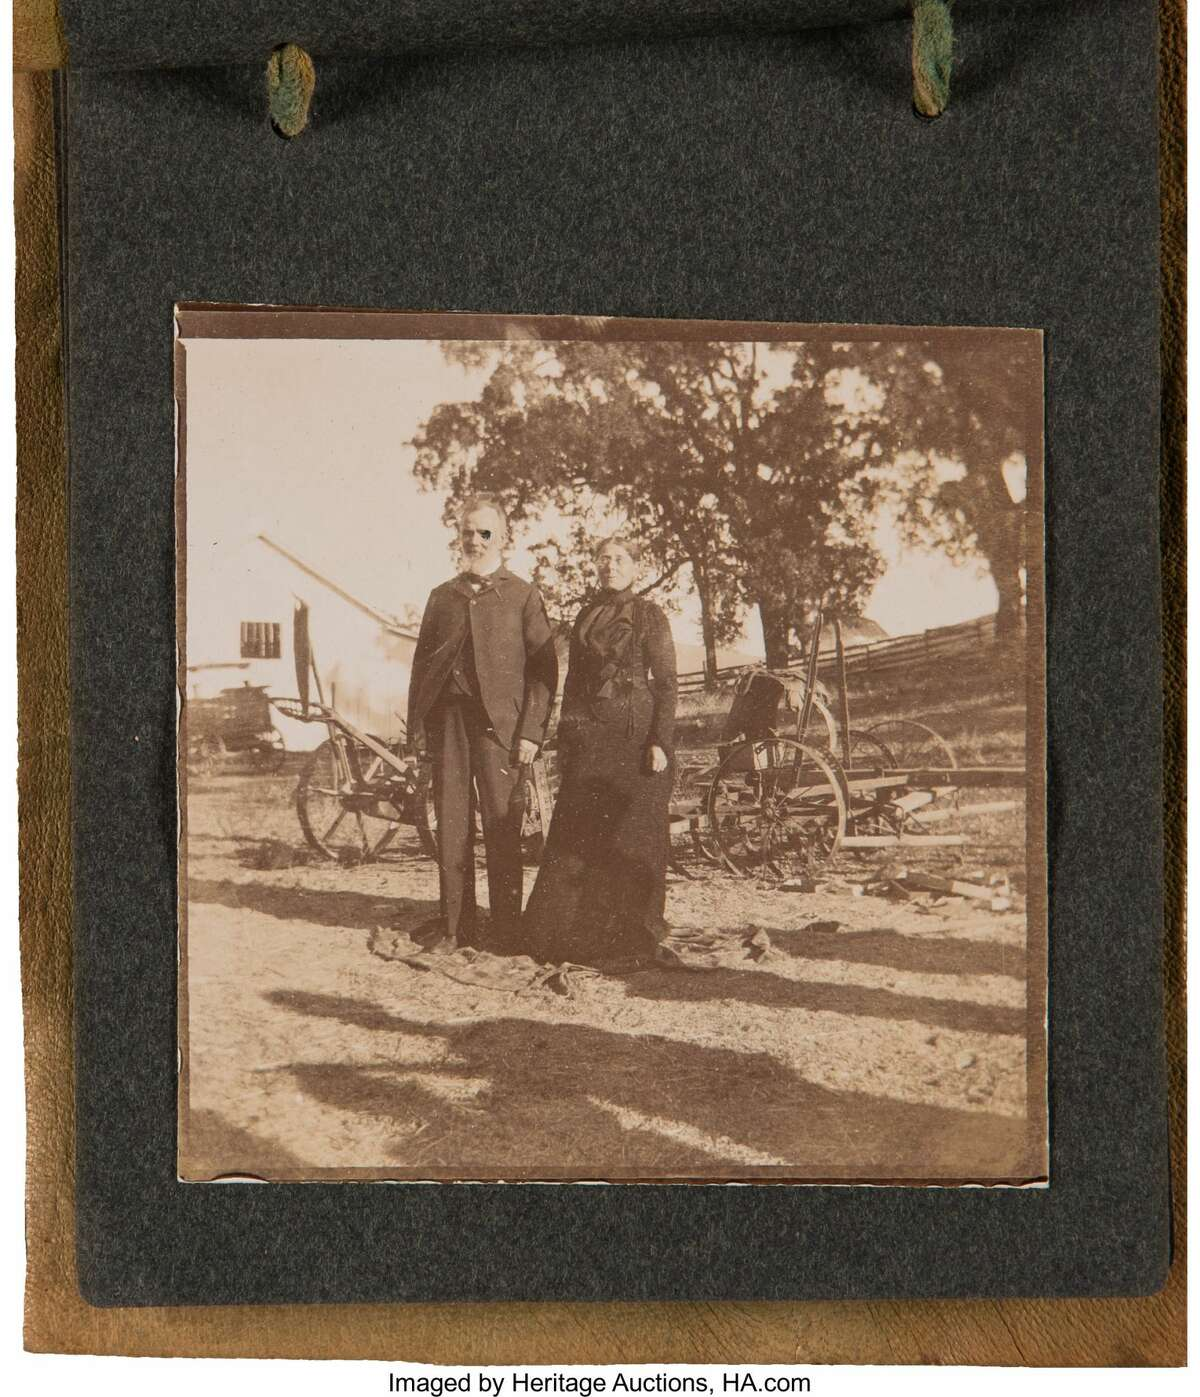 One of the items up for auction is a family photo album.The photographs depict individuals thought to be John Ernst Steinbeck (1862-1935) and his wife, Olive (1867-1934), along with various other members of the Steinbeck family.